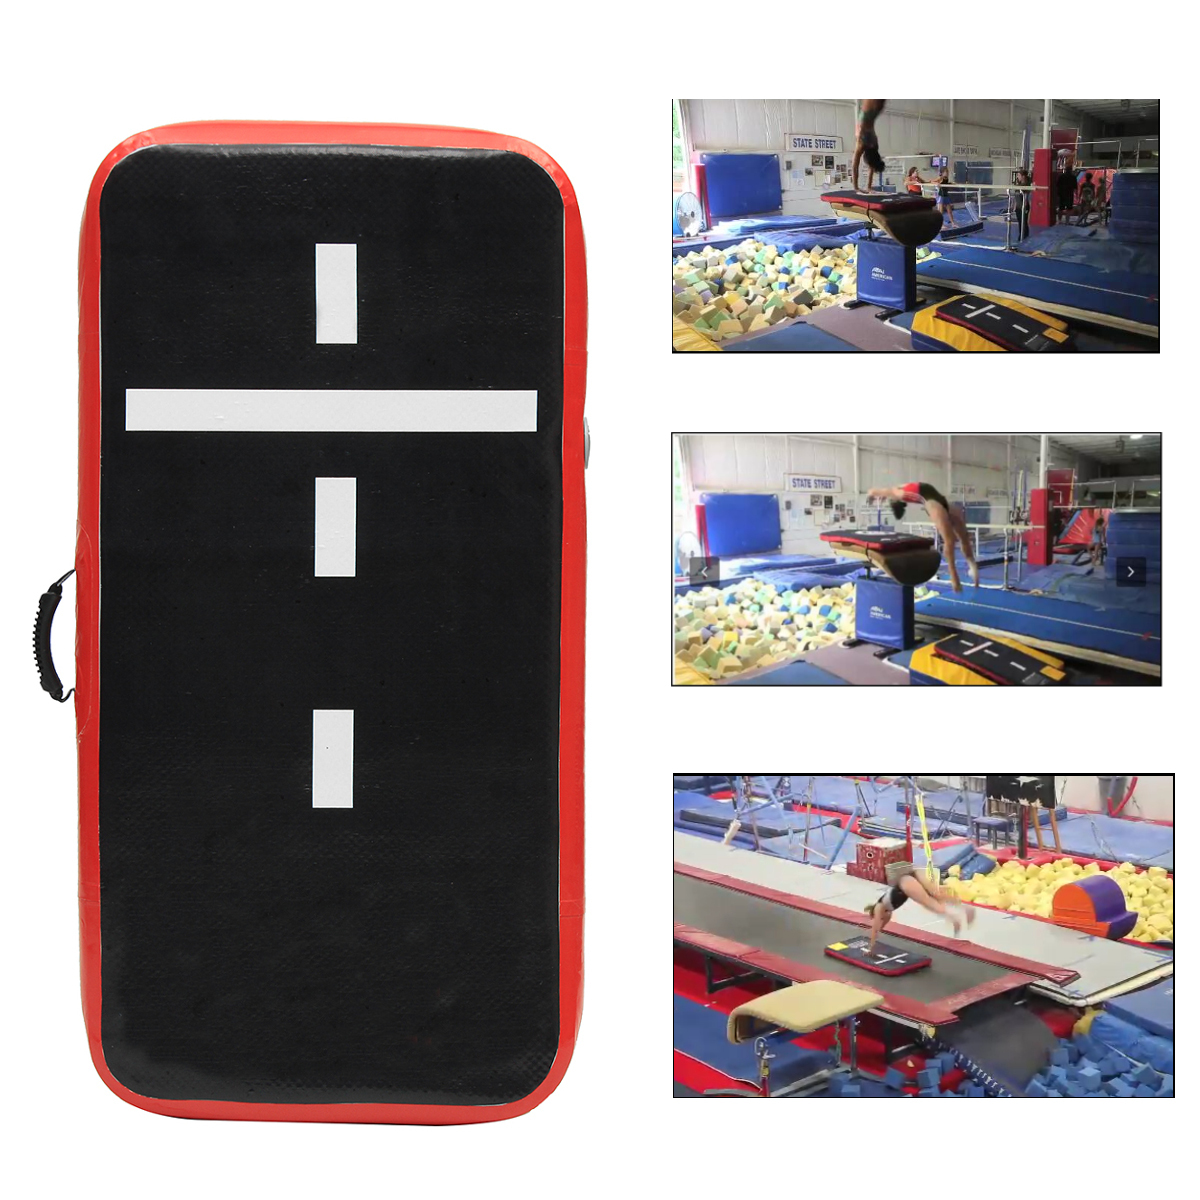 23.6x112.4x1.97inch Airtrack Gymnastics Mat Sports Rolling Mat Inflatable GYM Air Track Mat Set With Manual Pump